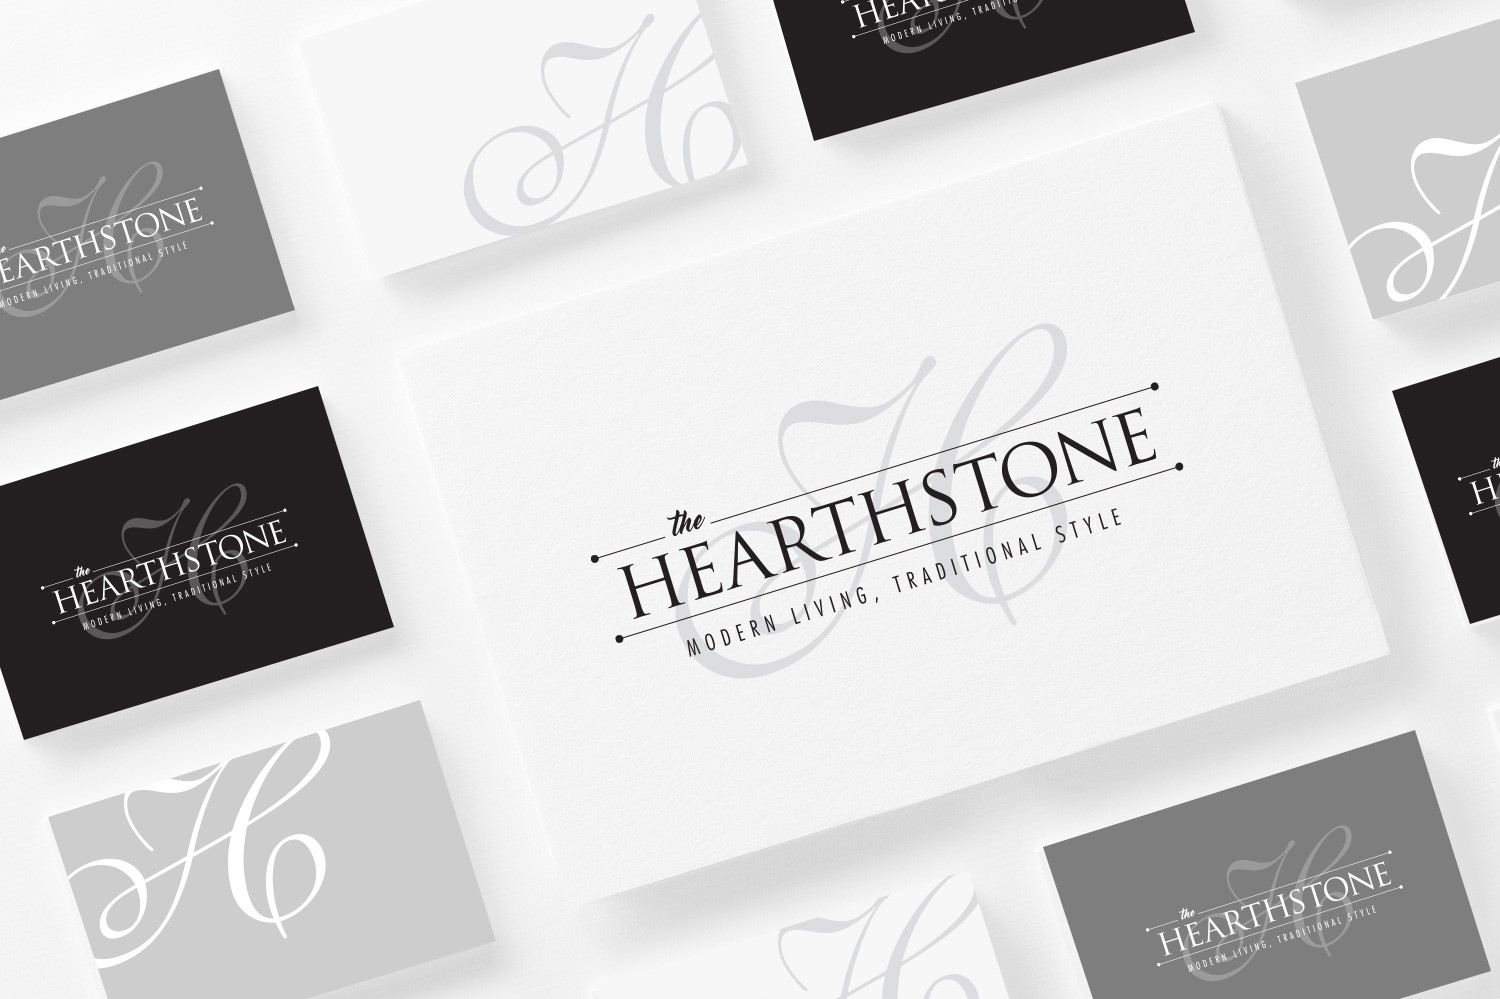 Hearthstone_CorporateIdentity